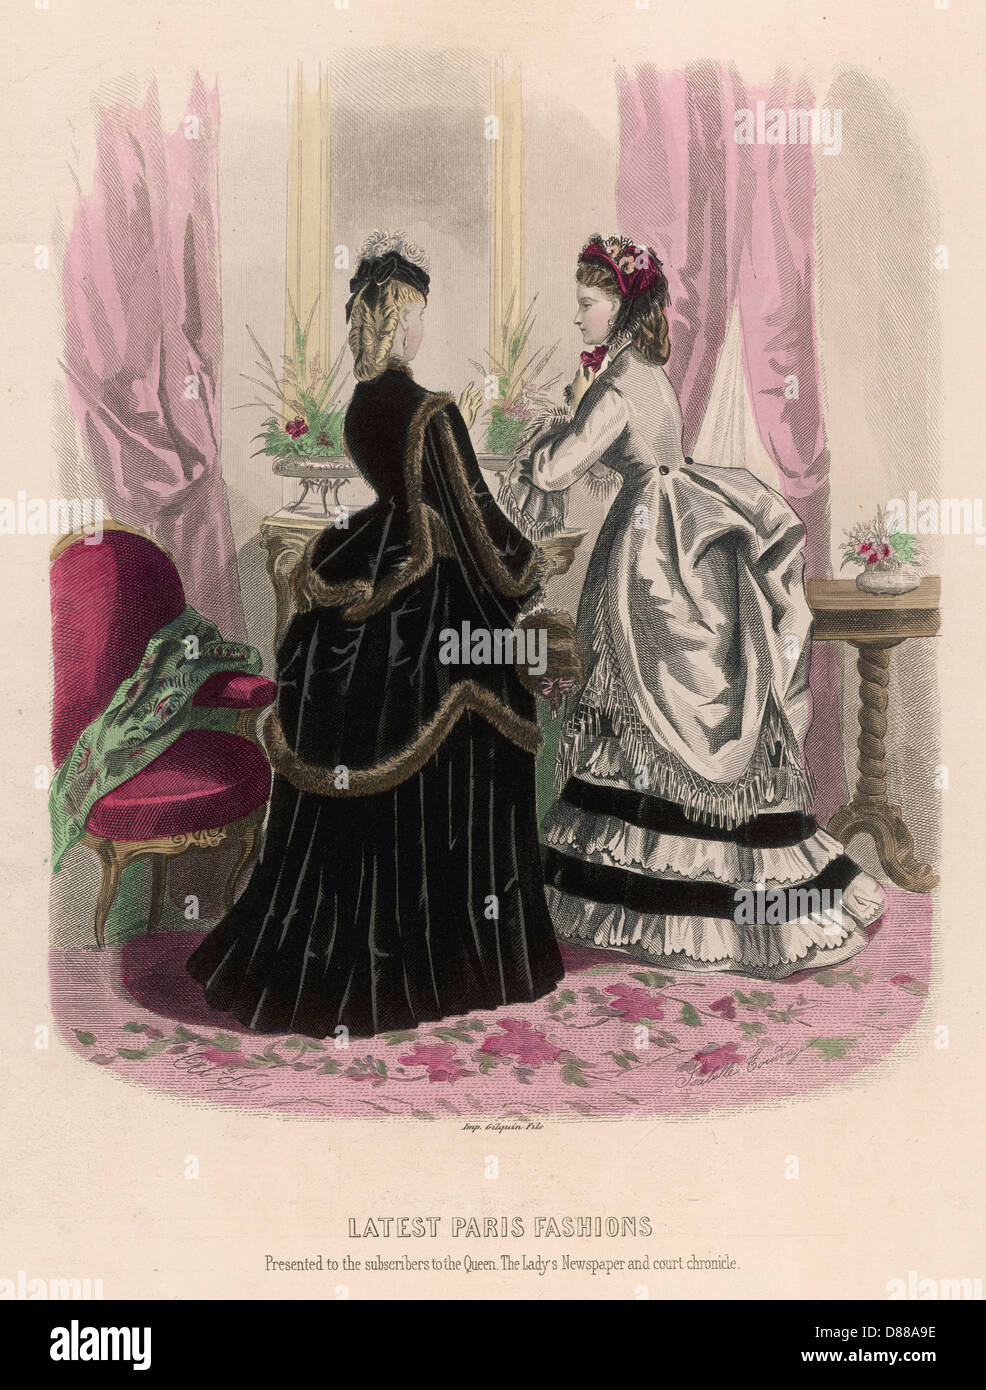 Costume December 1871 - Stock Image